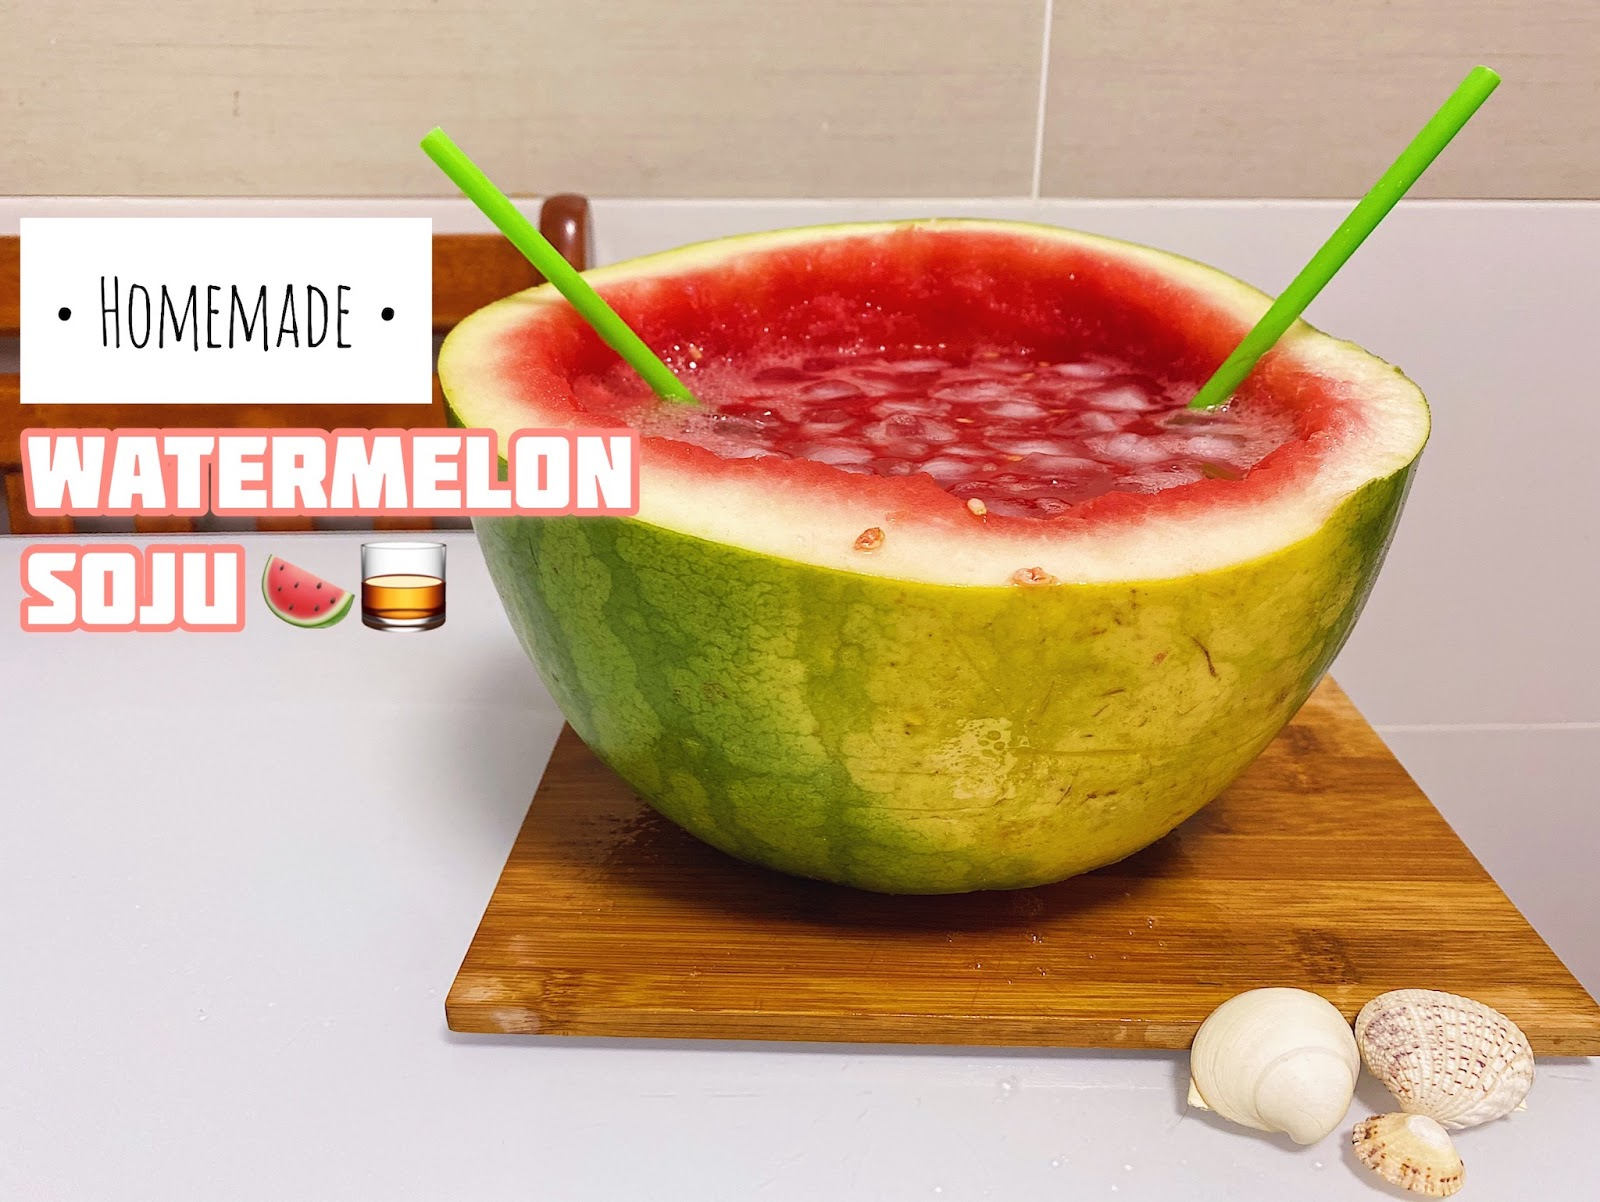 homemade, watermelon soju, unflavoured soju, watermelon vodka, easy recipe, subak soju, subak-soju